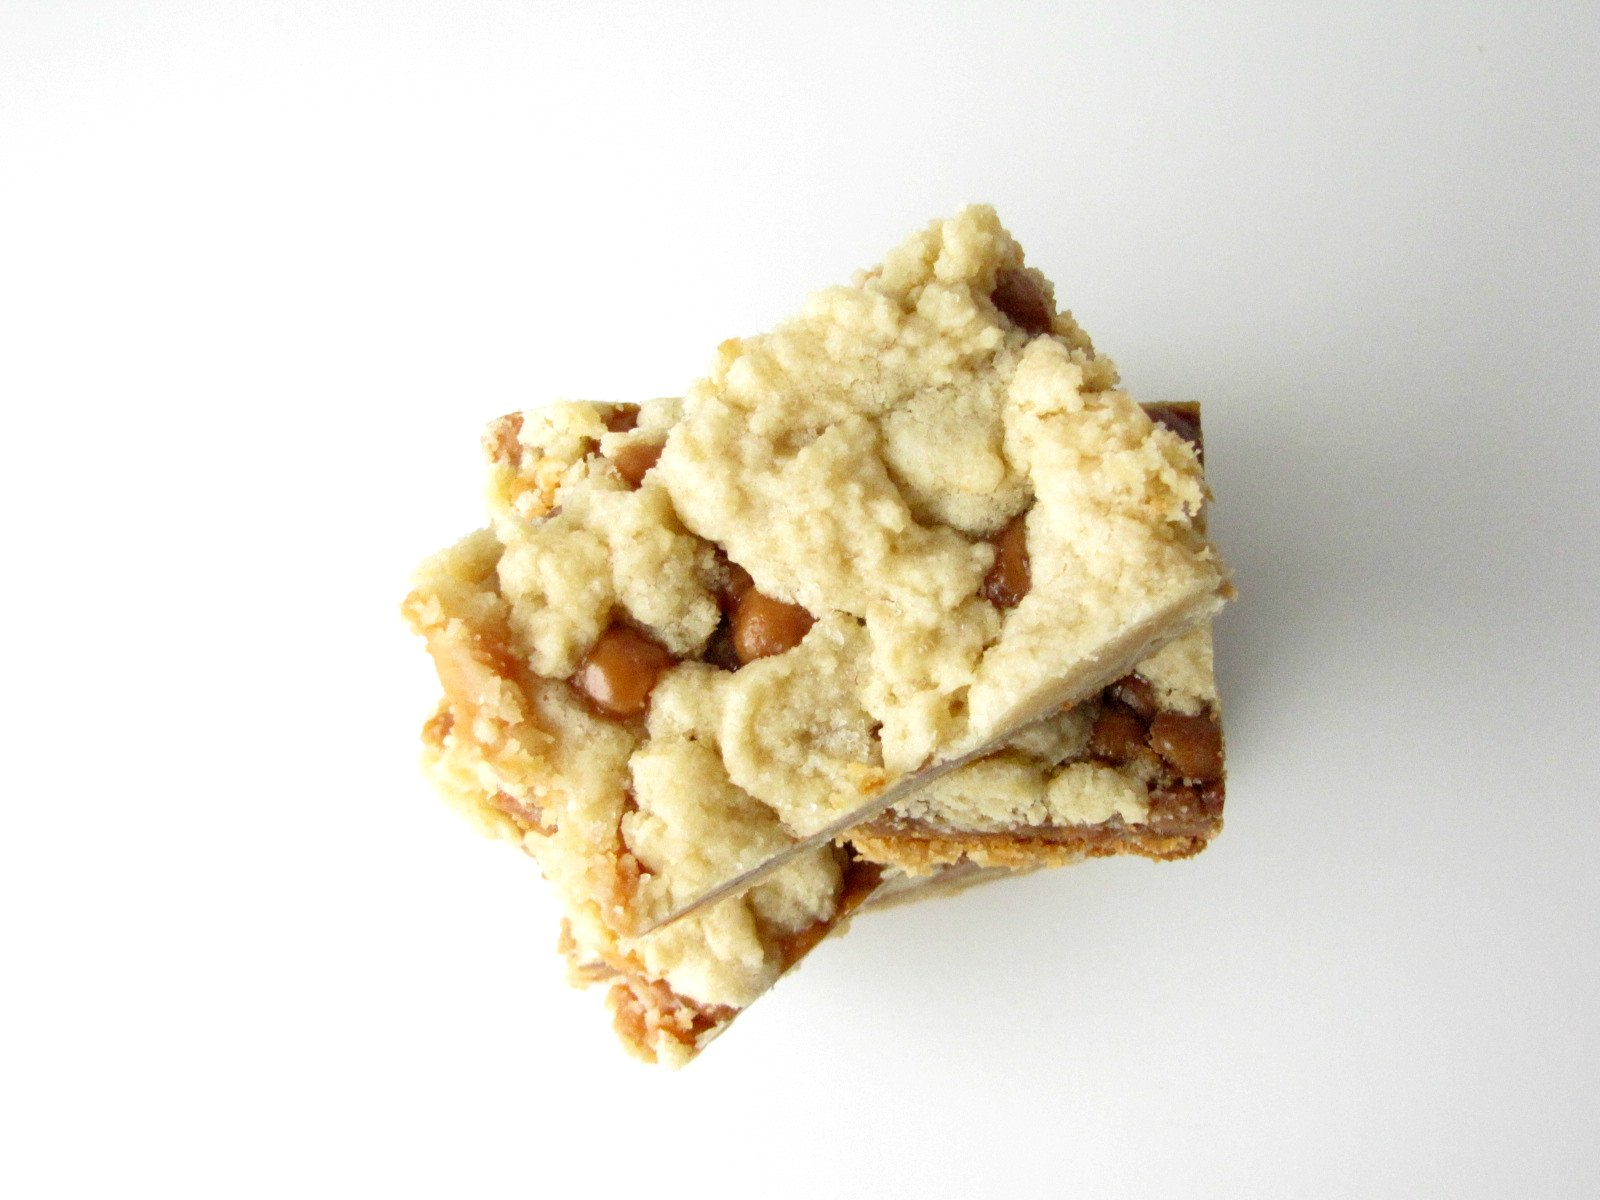 Overhead view of Slow Cooker Salted Caramel Cookie Bars